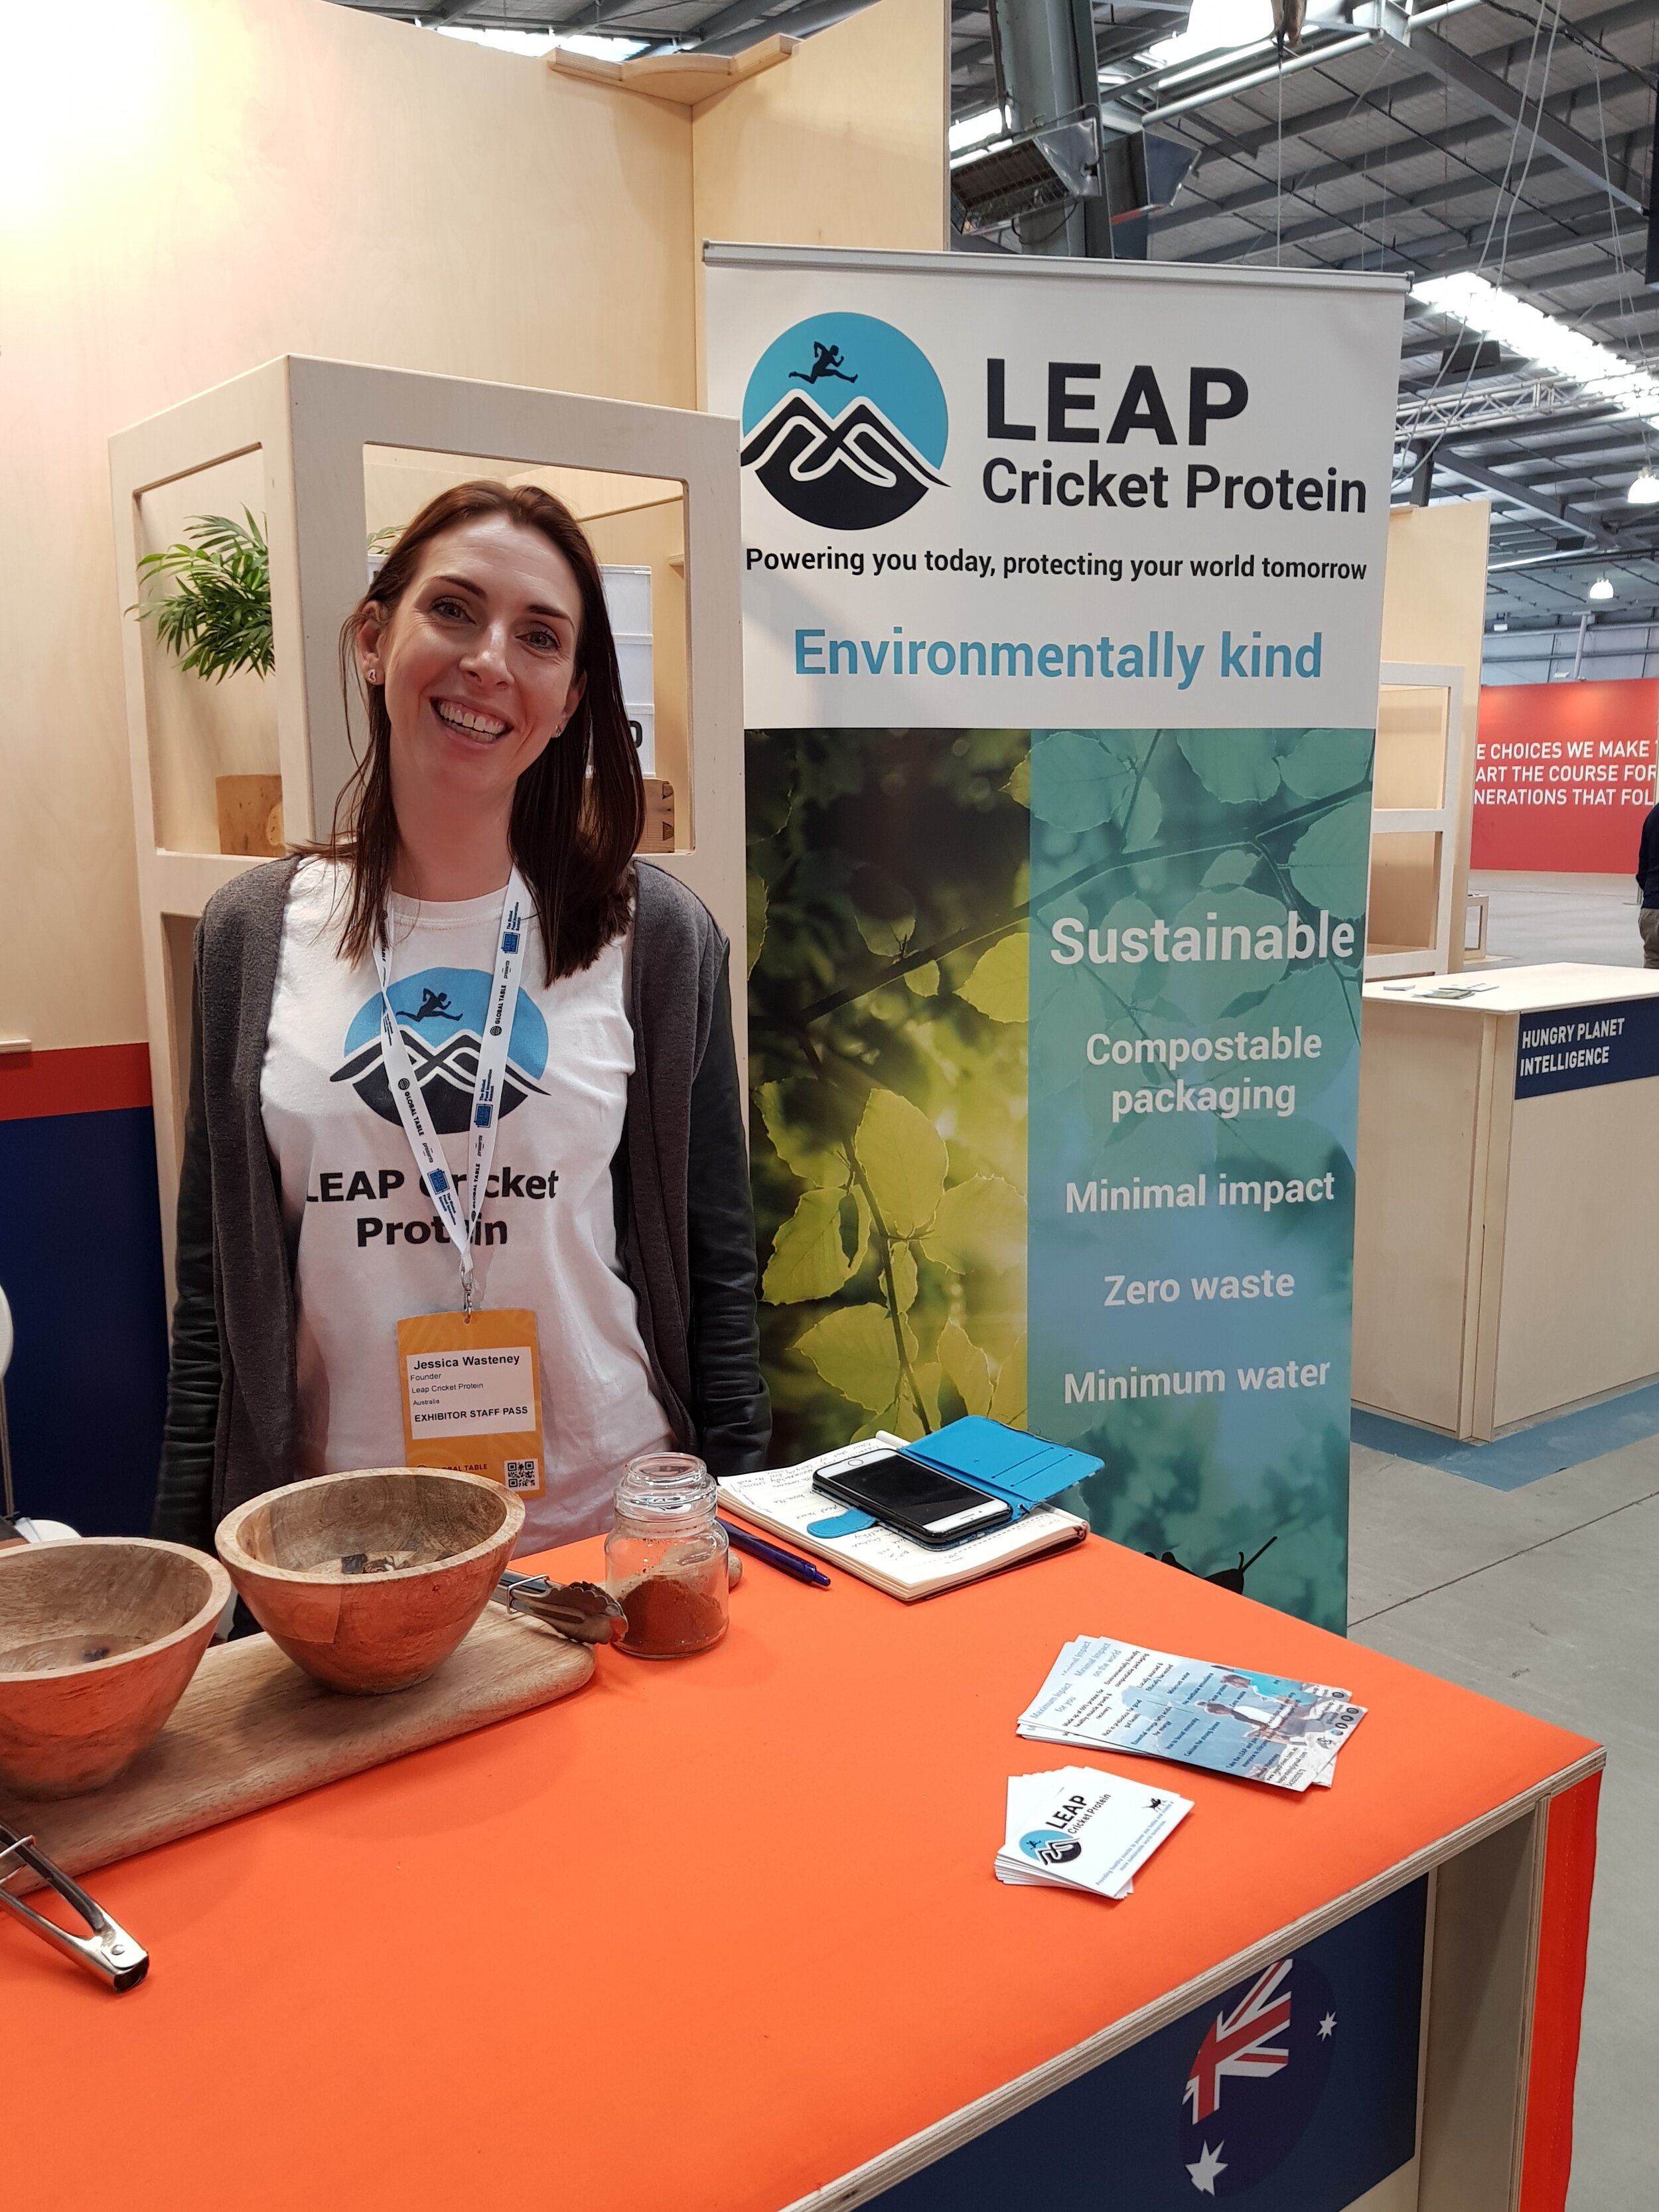 Jessica Wasteney, LEAP Protein at Global Table Australia Sep 2019